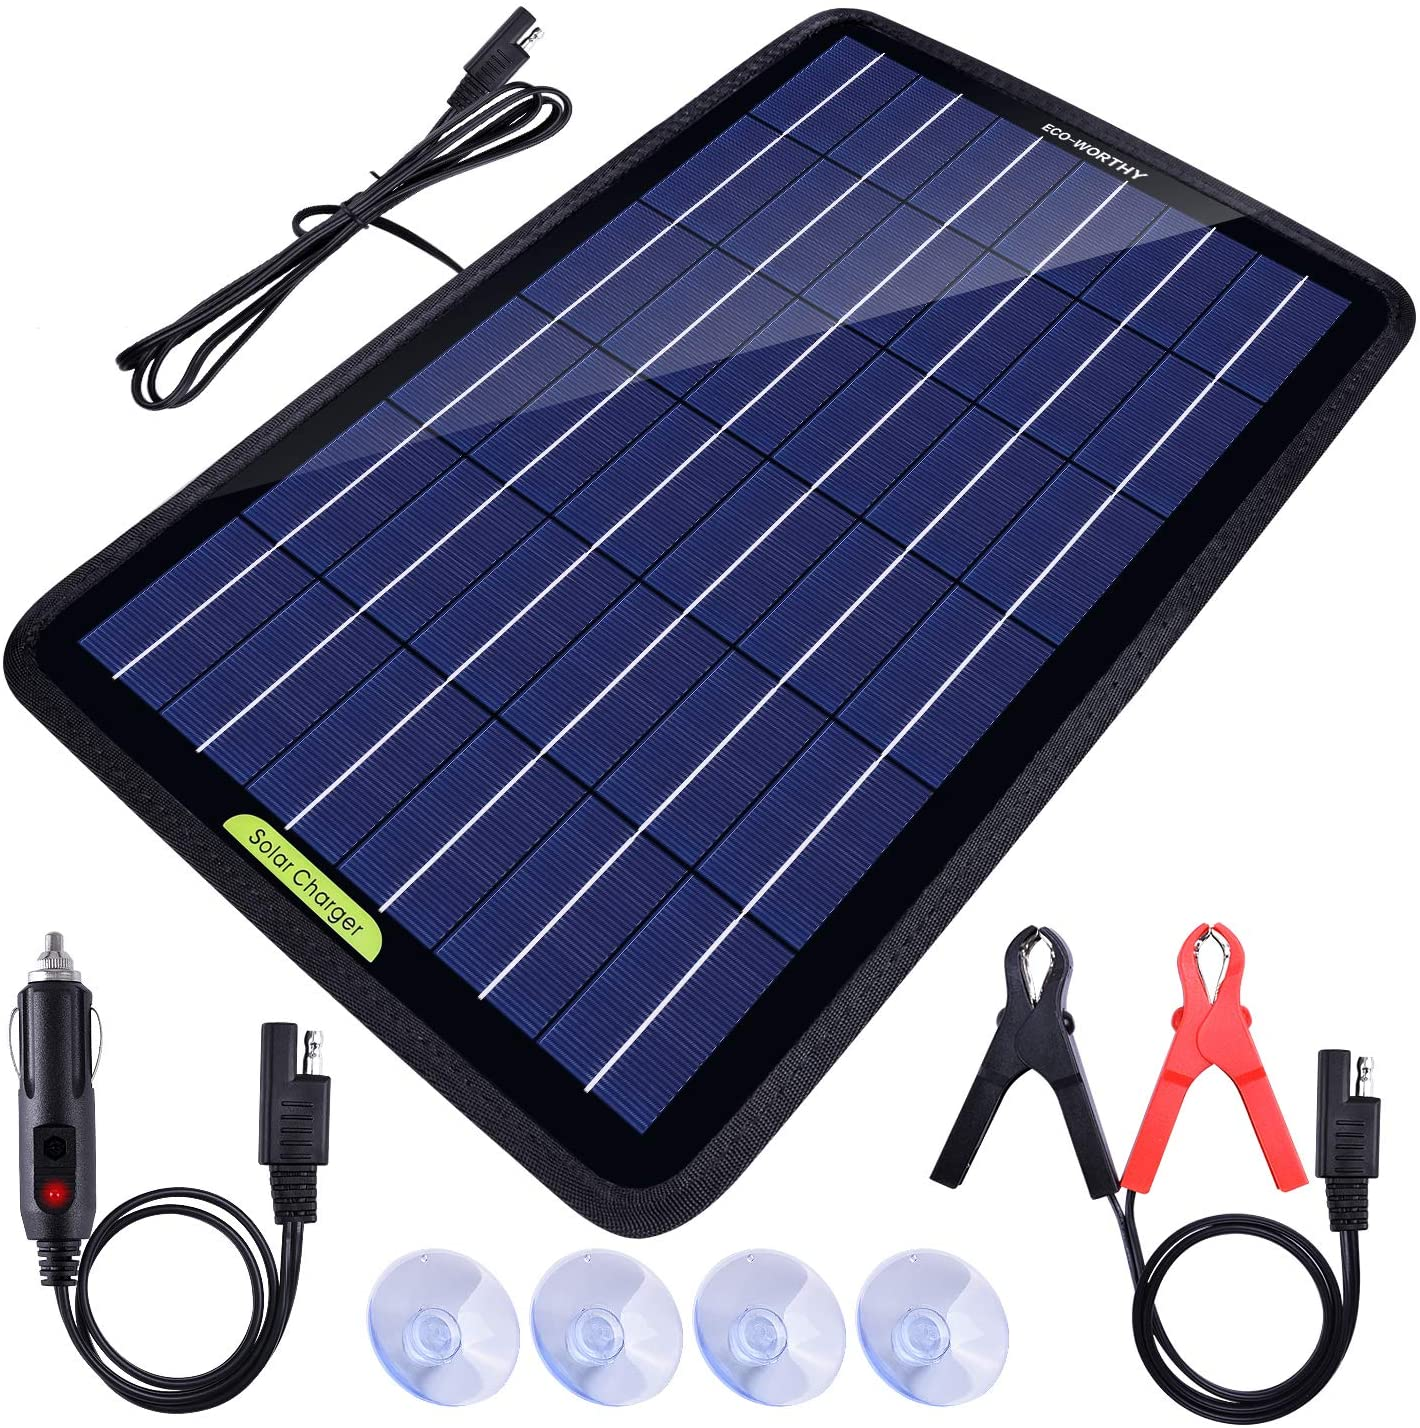 ECO WORTHY 12 Volts 10 Watts Portable Power Solar Panel Battery Charger Backup for Car Boat with Alligator clip adapter, Black